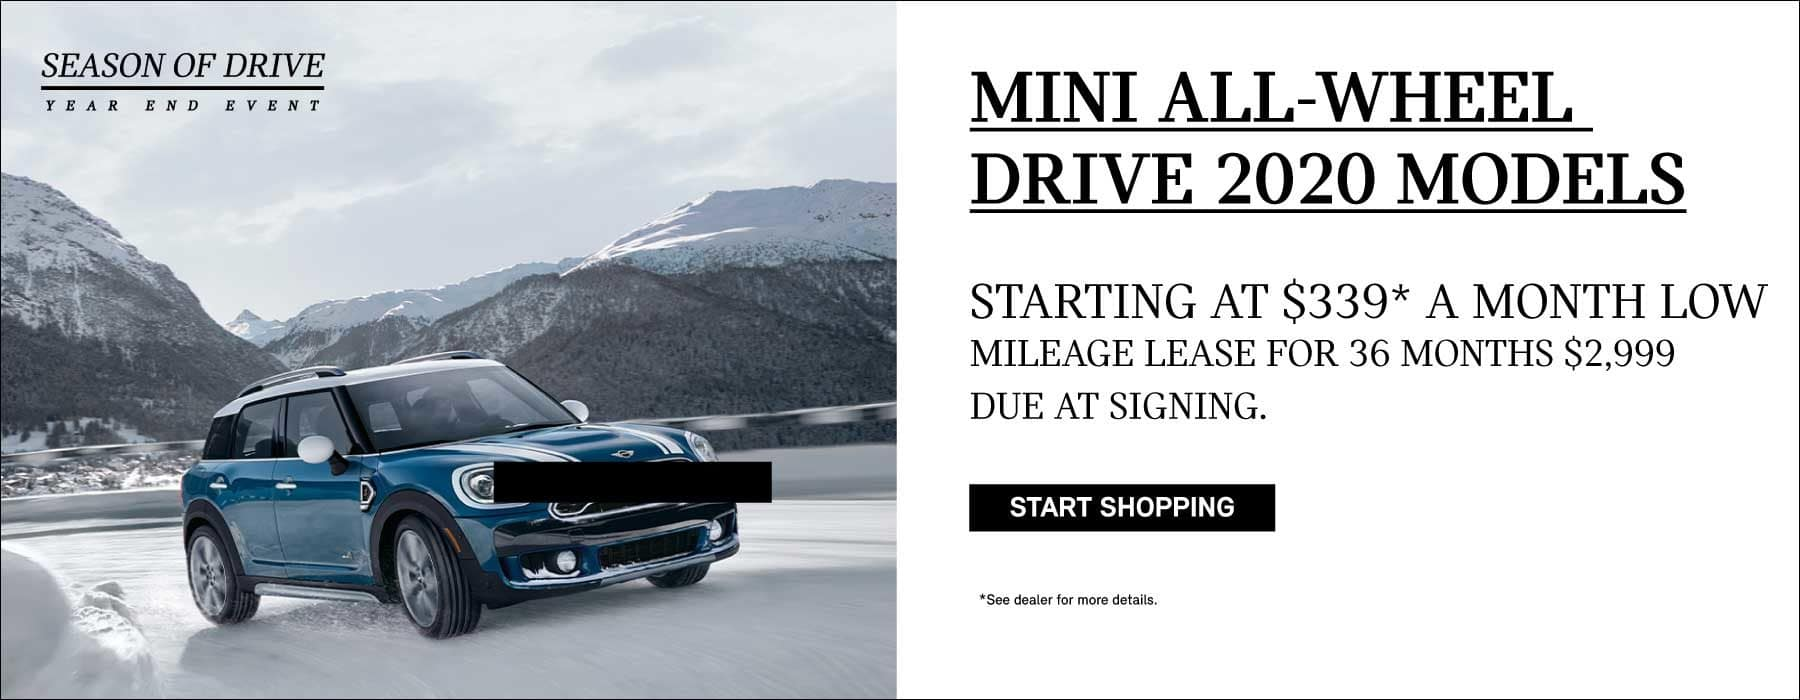 ISLAND BLUE MINI COOPER COUNTRYMAN ALL4 ON SNOW COVERED ROAD